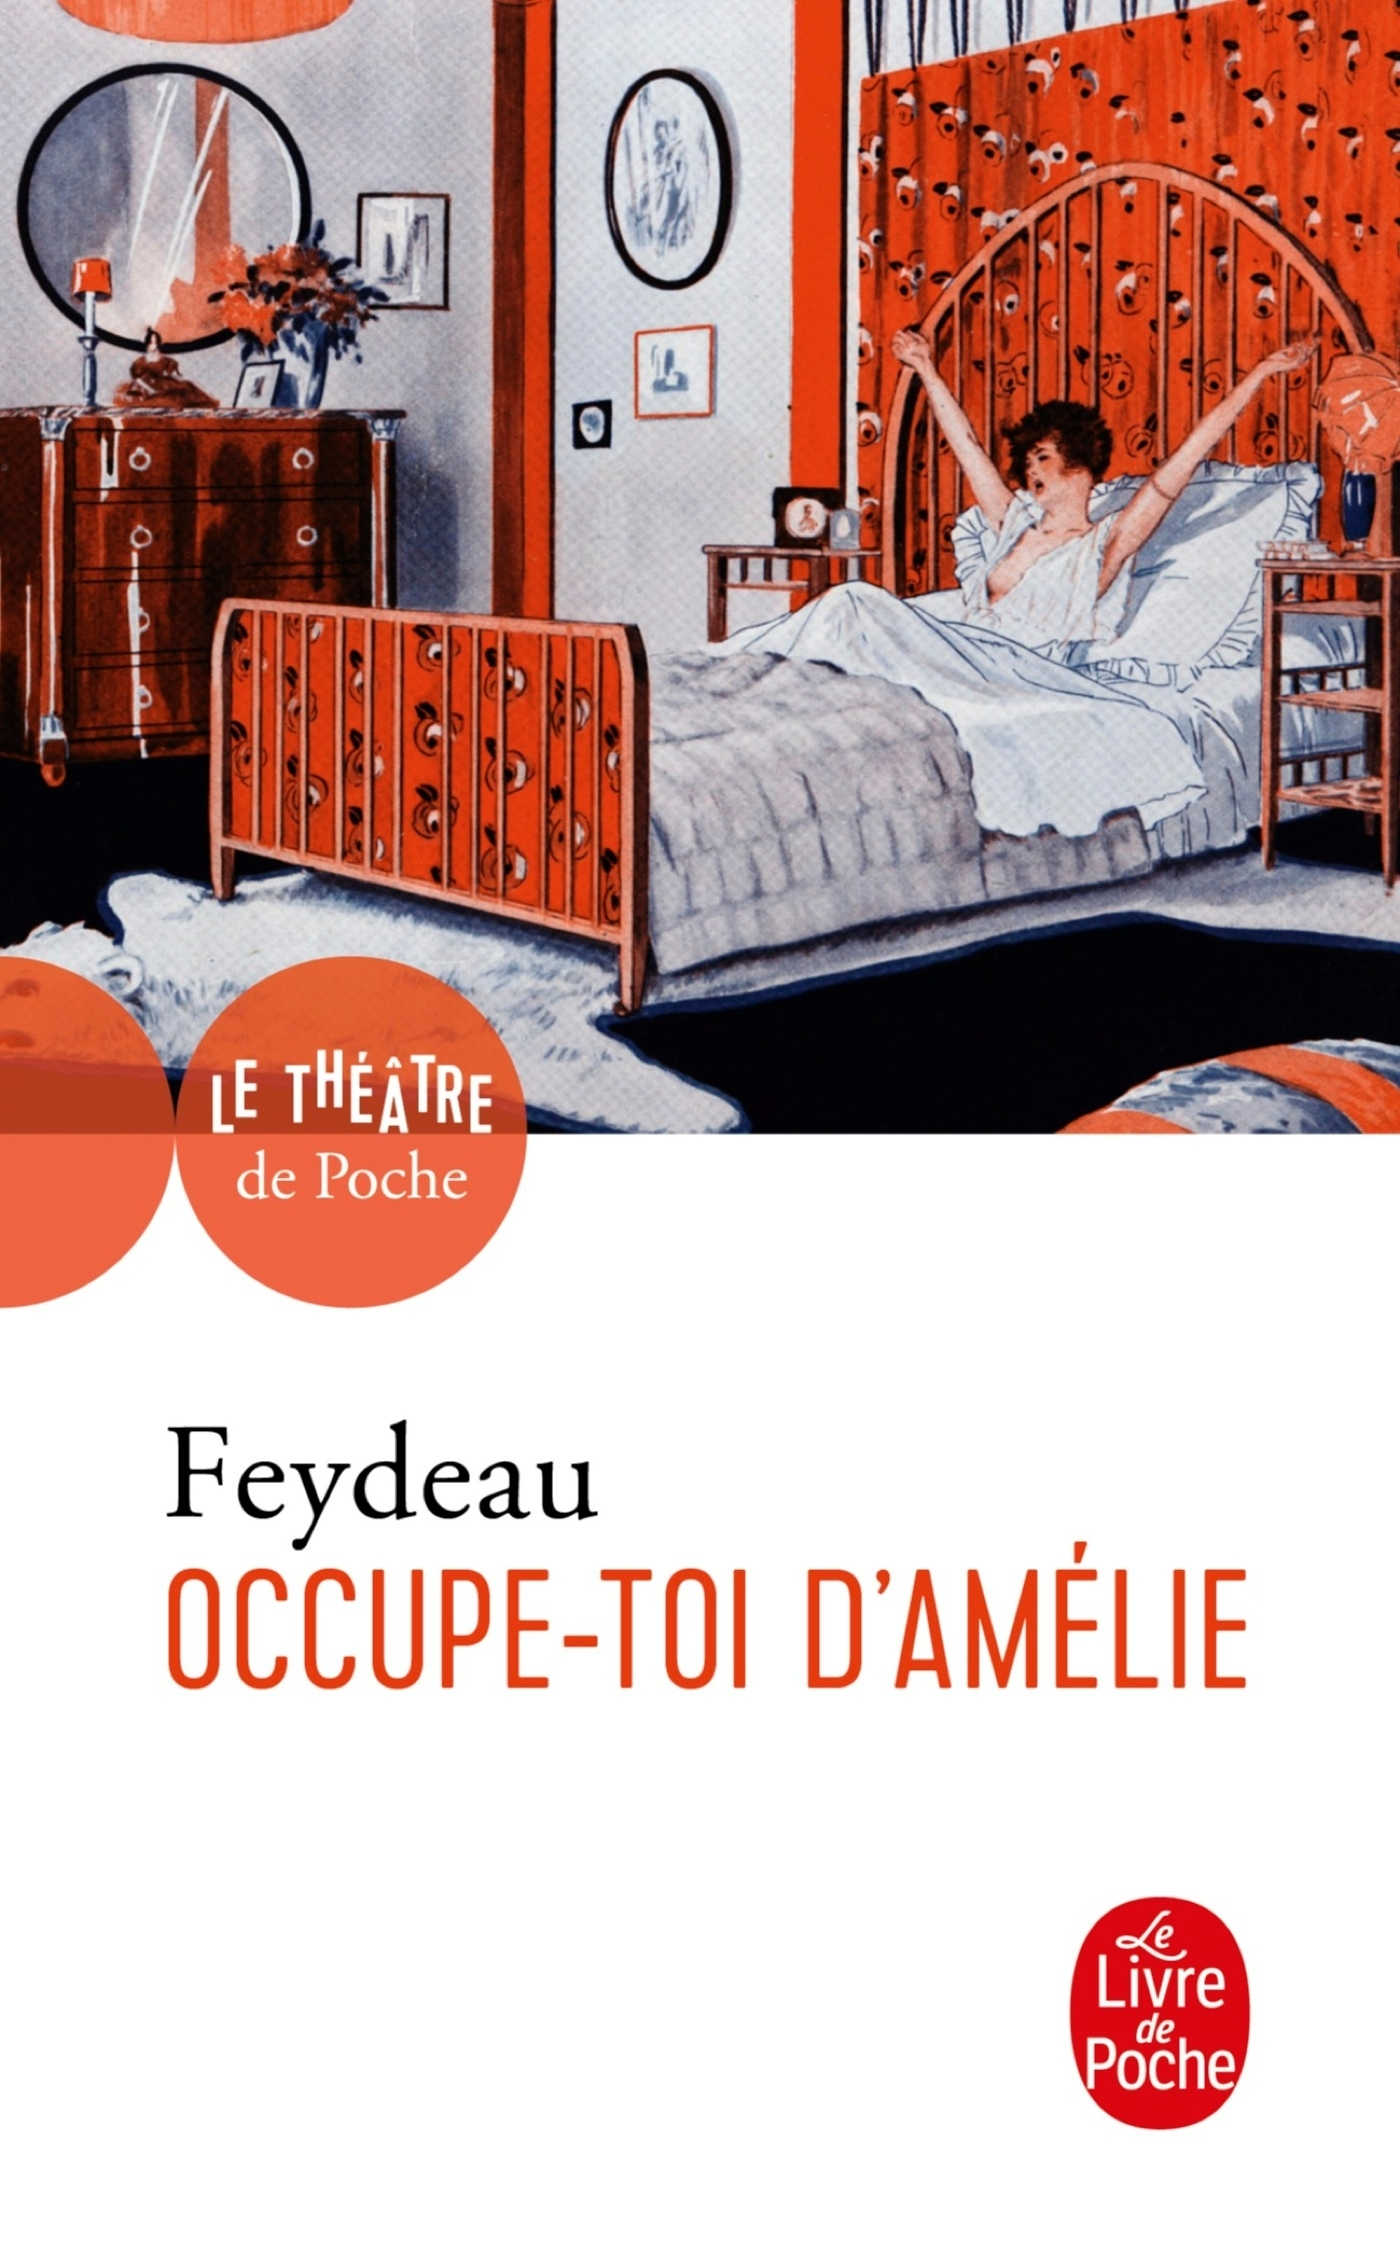 OCCUPE-TOI D'AMELIE